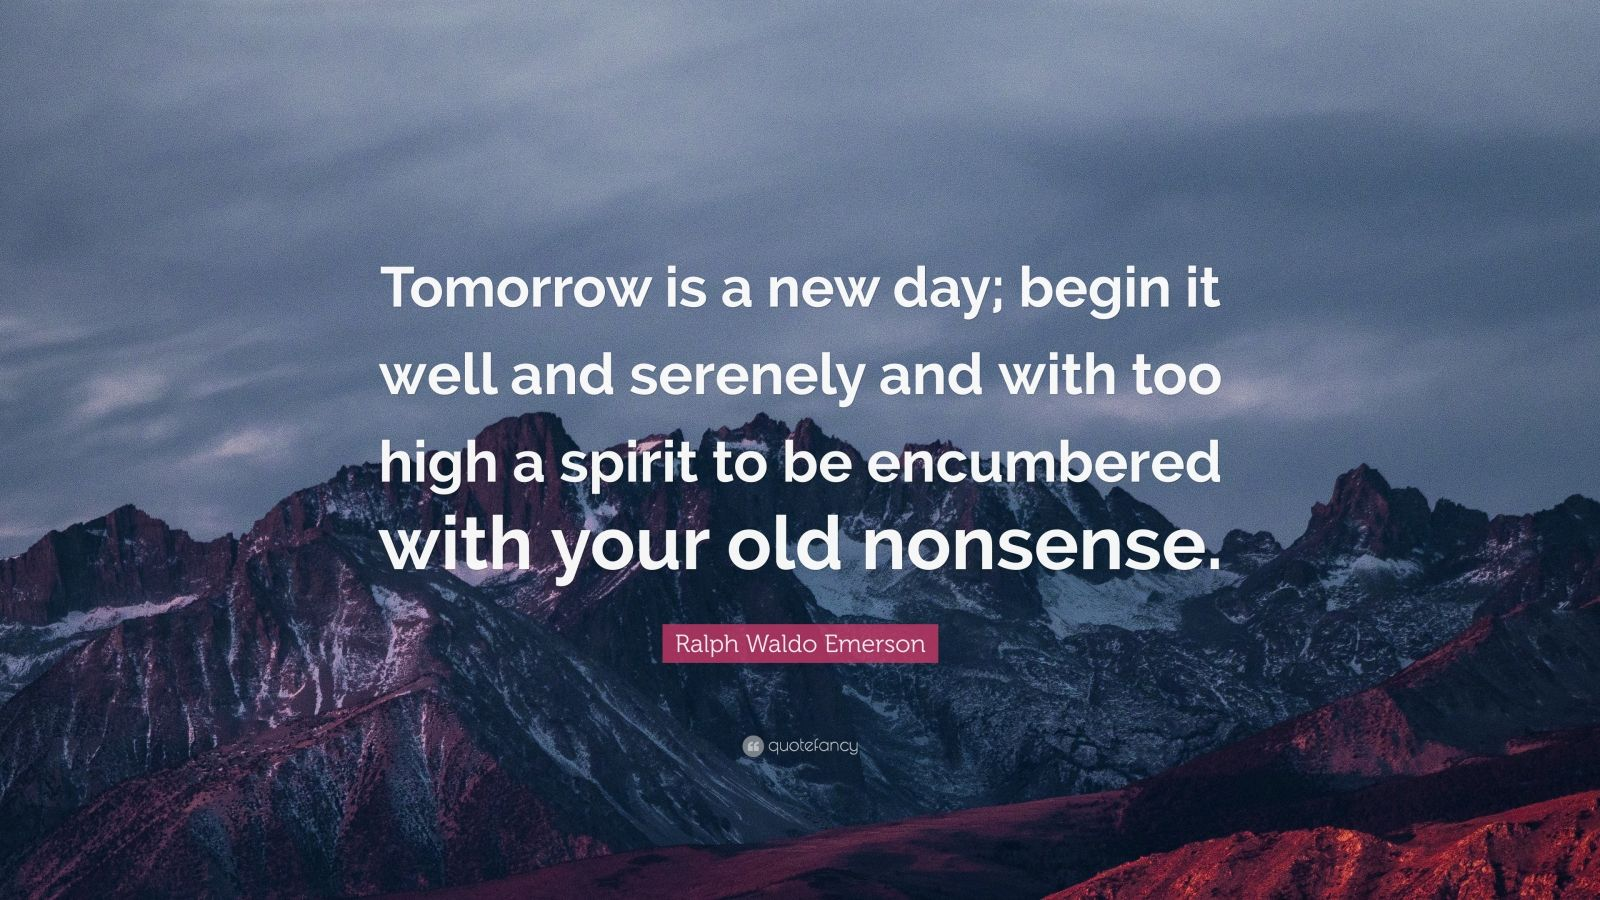 "Ralph Waldo Emerson Quote: ""Tomorrow is a new day; begin it well and serenely and with too high a spirit to be encumbered with your old nonsense."""